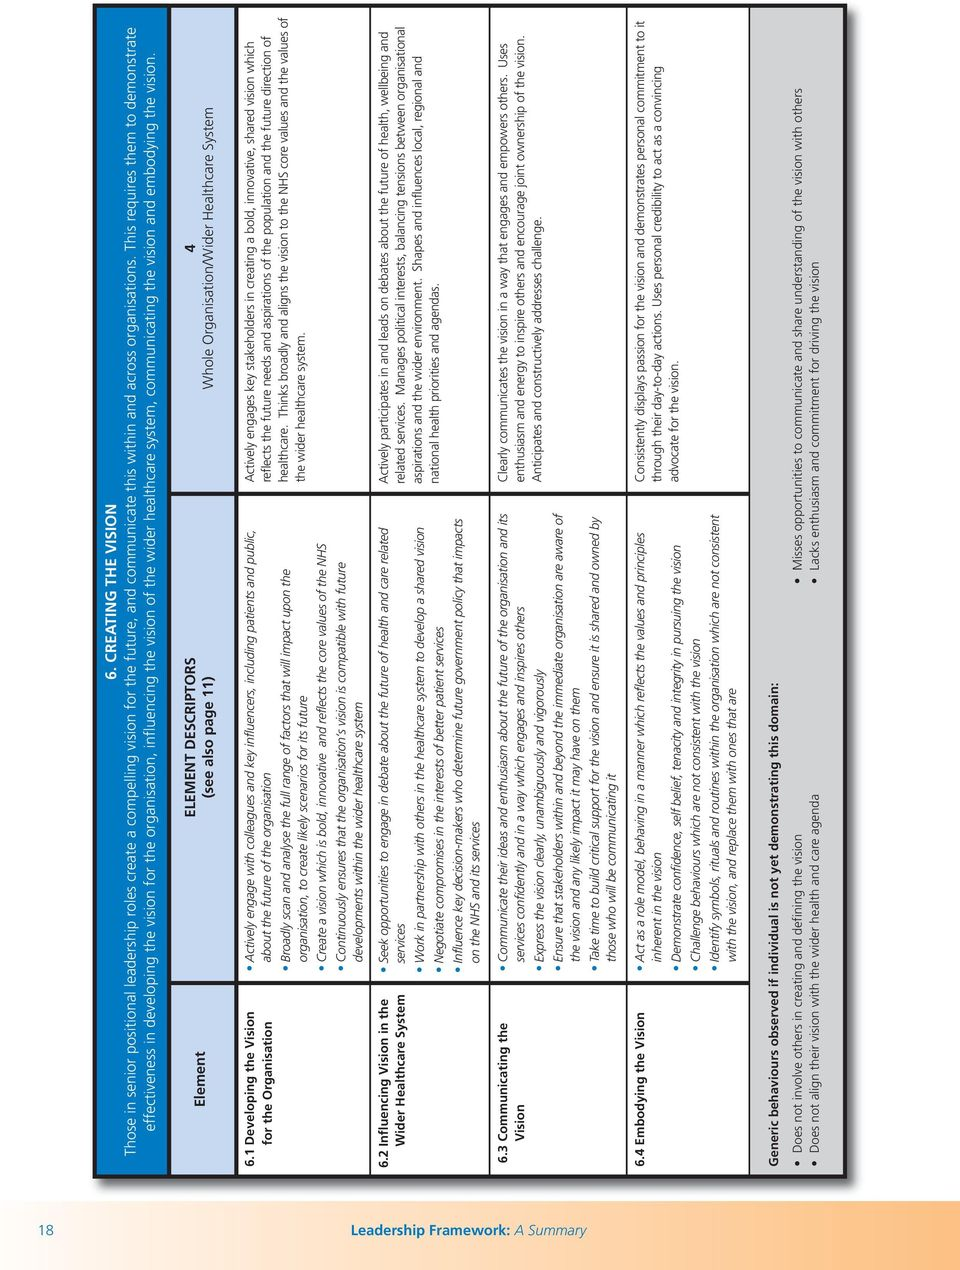 Element ELEMENT DESCRIPTORS (see also page 11) 4 Whole Organisation/Wider Healthcare System 6.